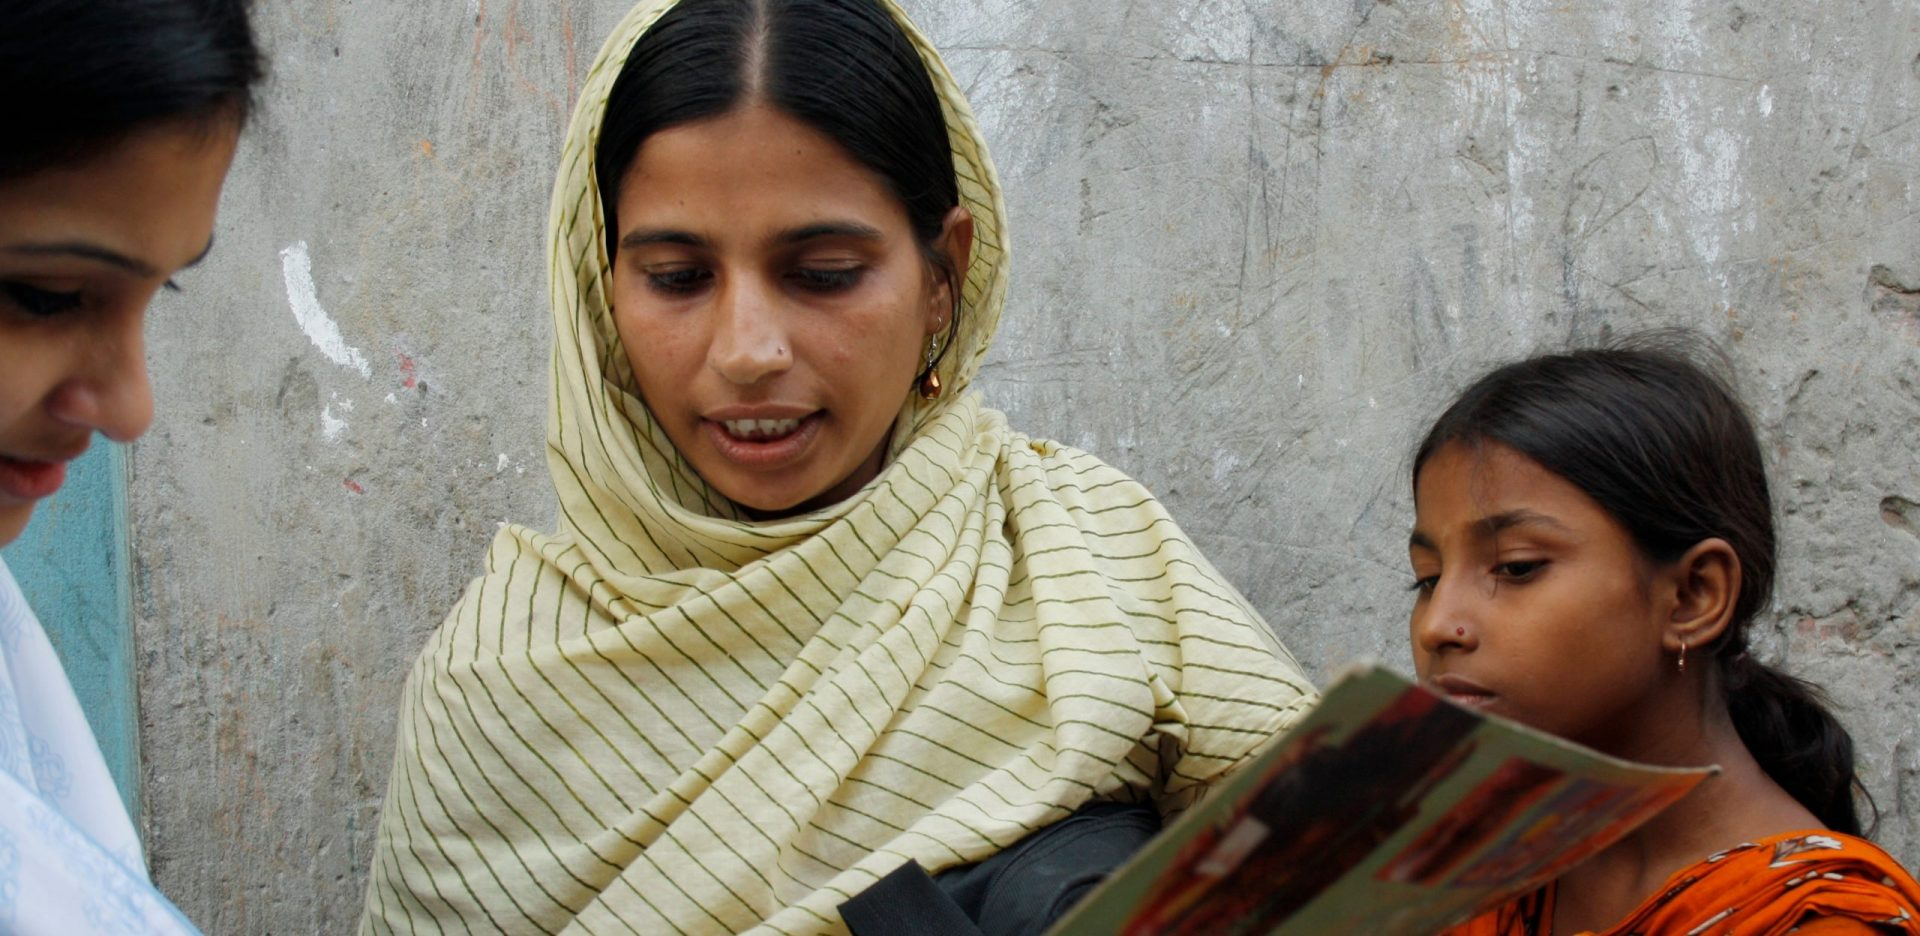 A community health working in India speaking to a woman and her daughter